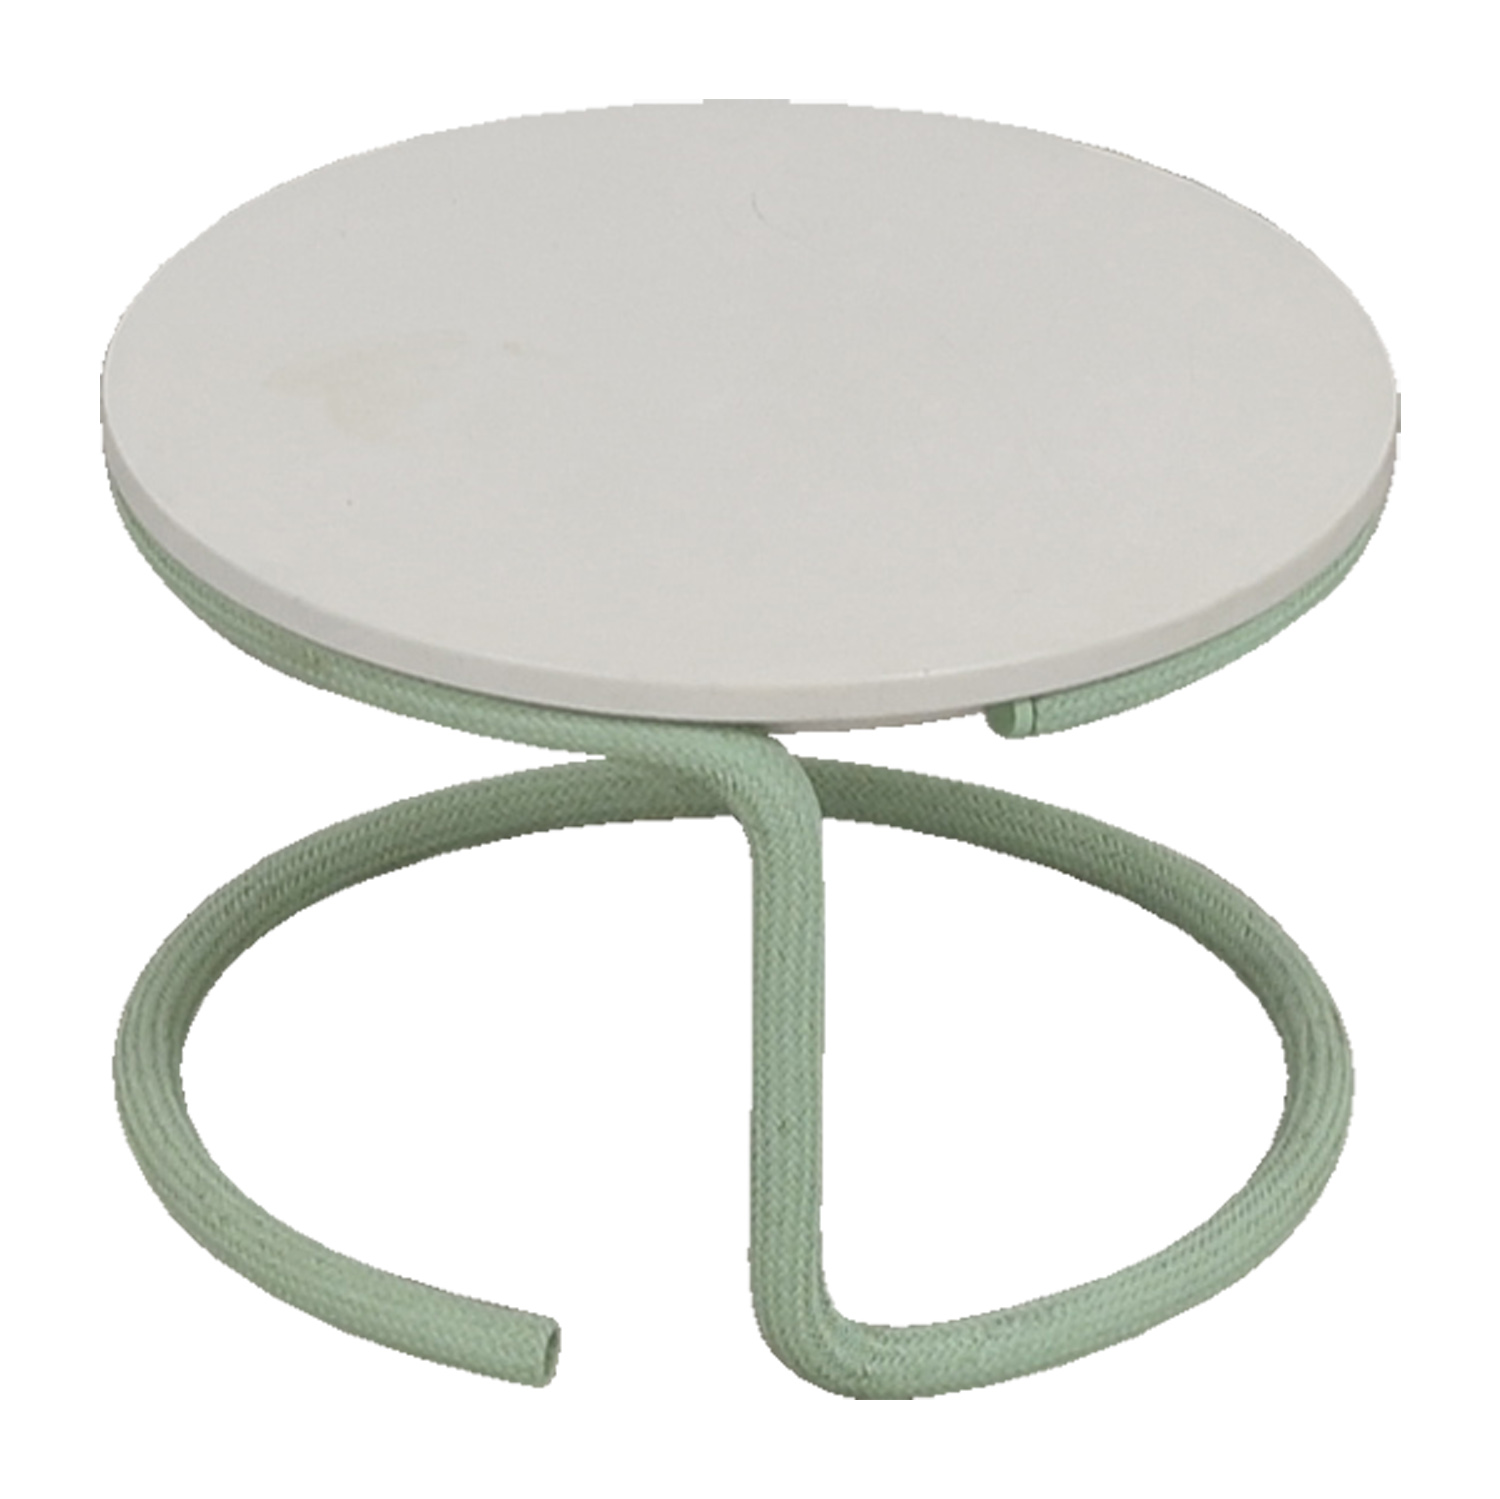 buy Urban Outfitters White Round Top with Green Base Side Table Urban Outfitters